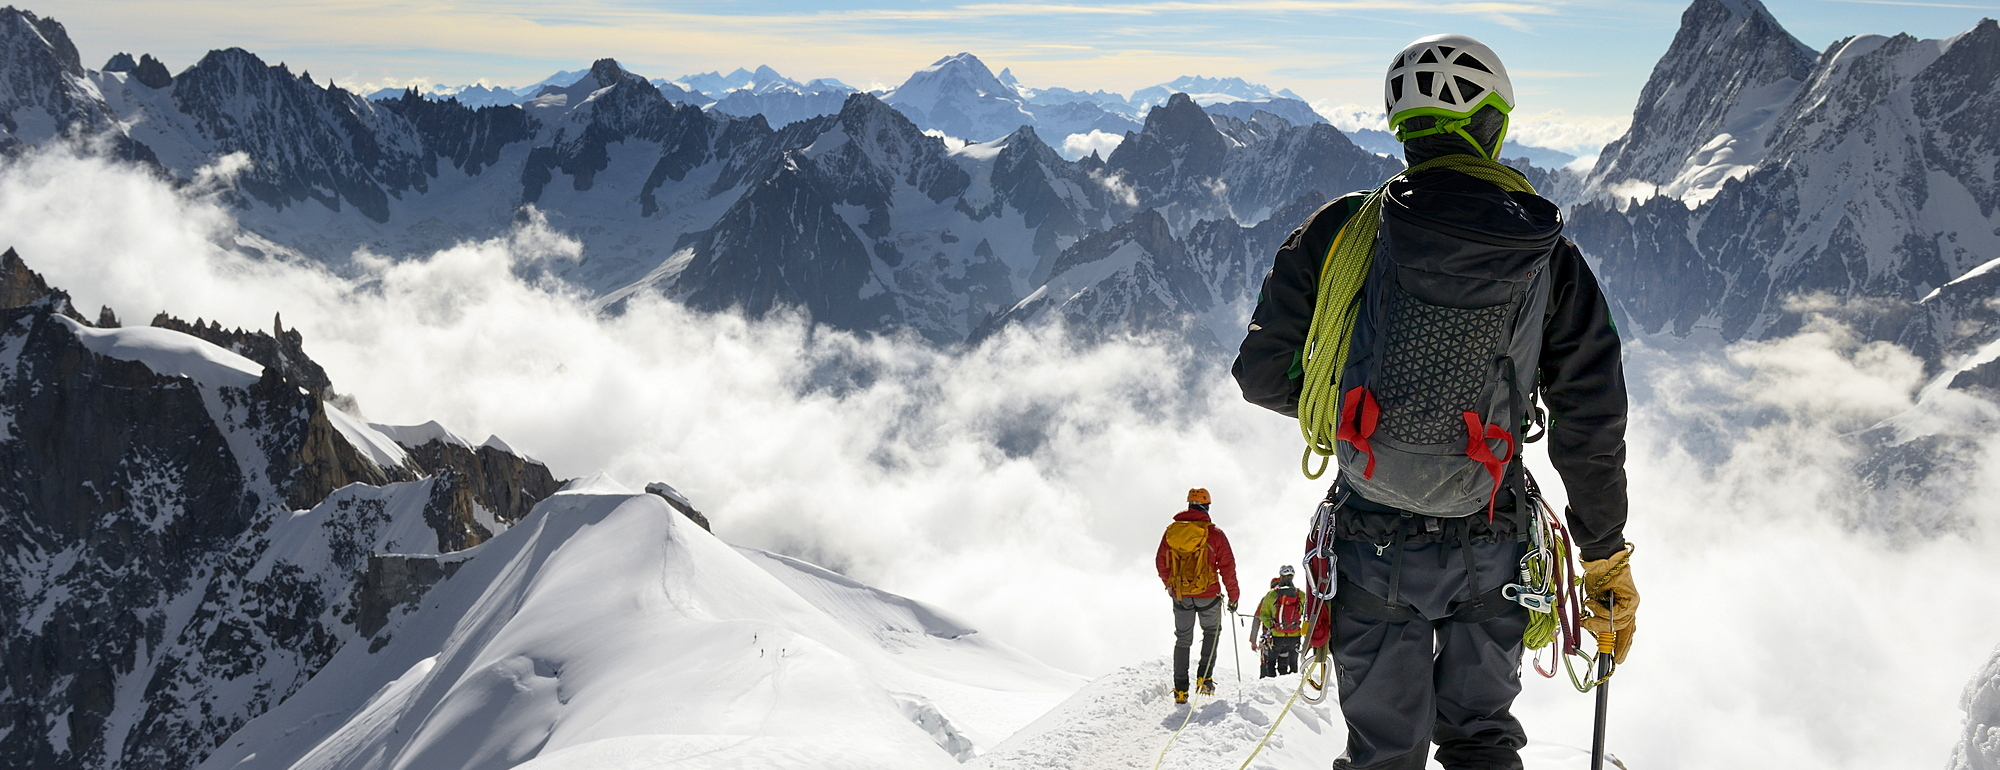 792-791 ( Peter Richardson ) - Mountaineers and climbers, Aiguille du Midi, Mont Blanc Massif, Chamonix, French Alps, Haute Savoie, France, Europe